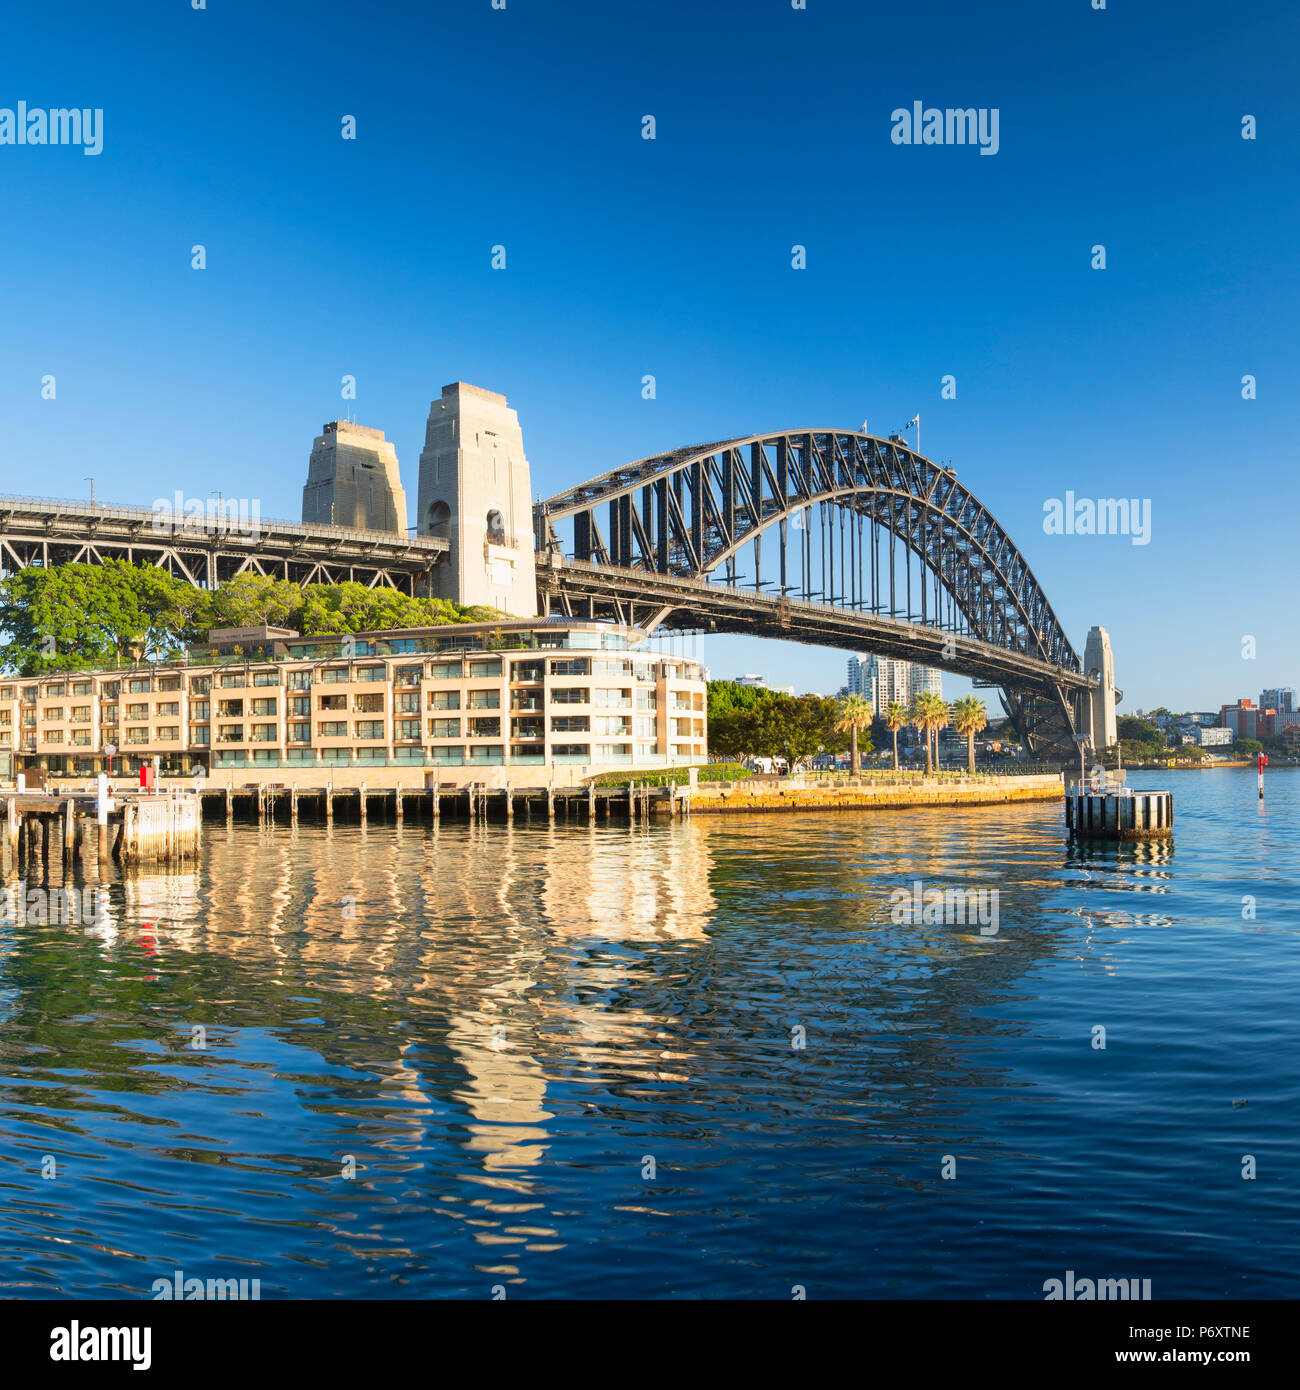 Sydney Harbour Bridge, Sydney, New South Wales, Australien Stockbild